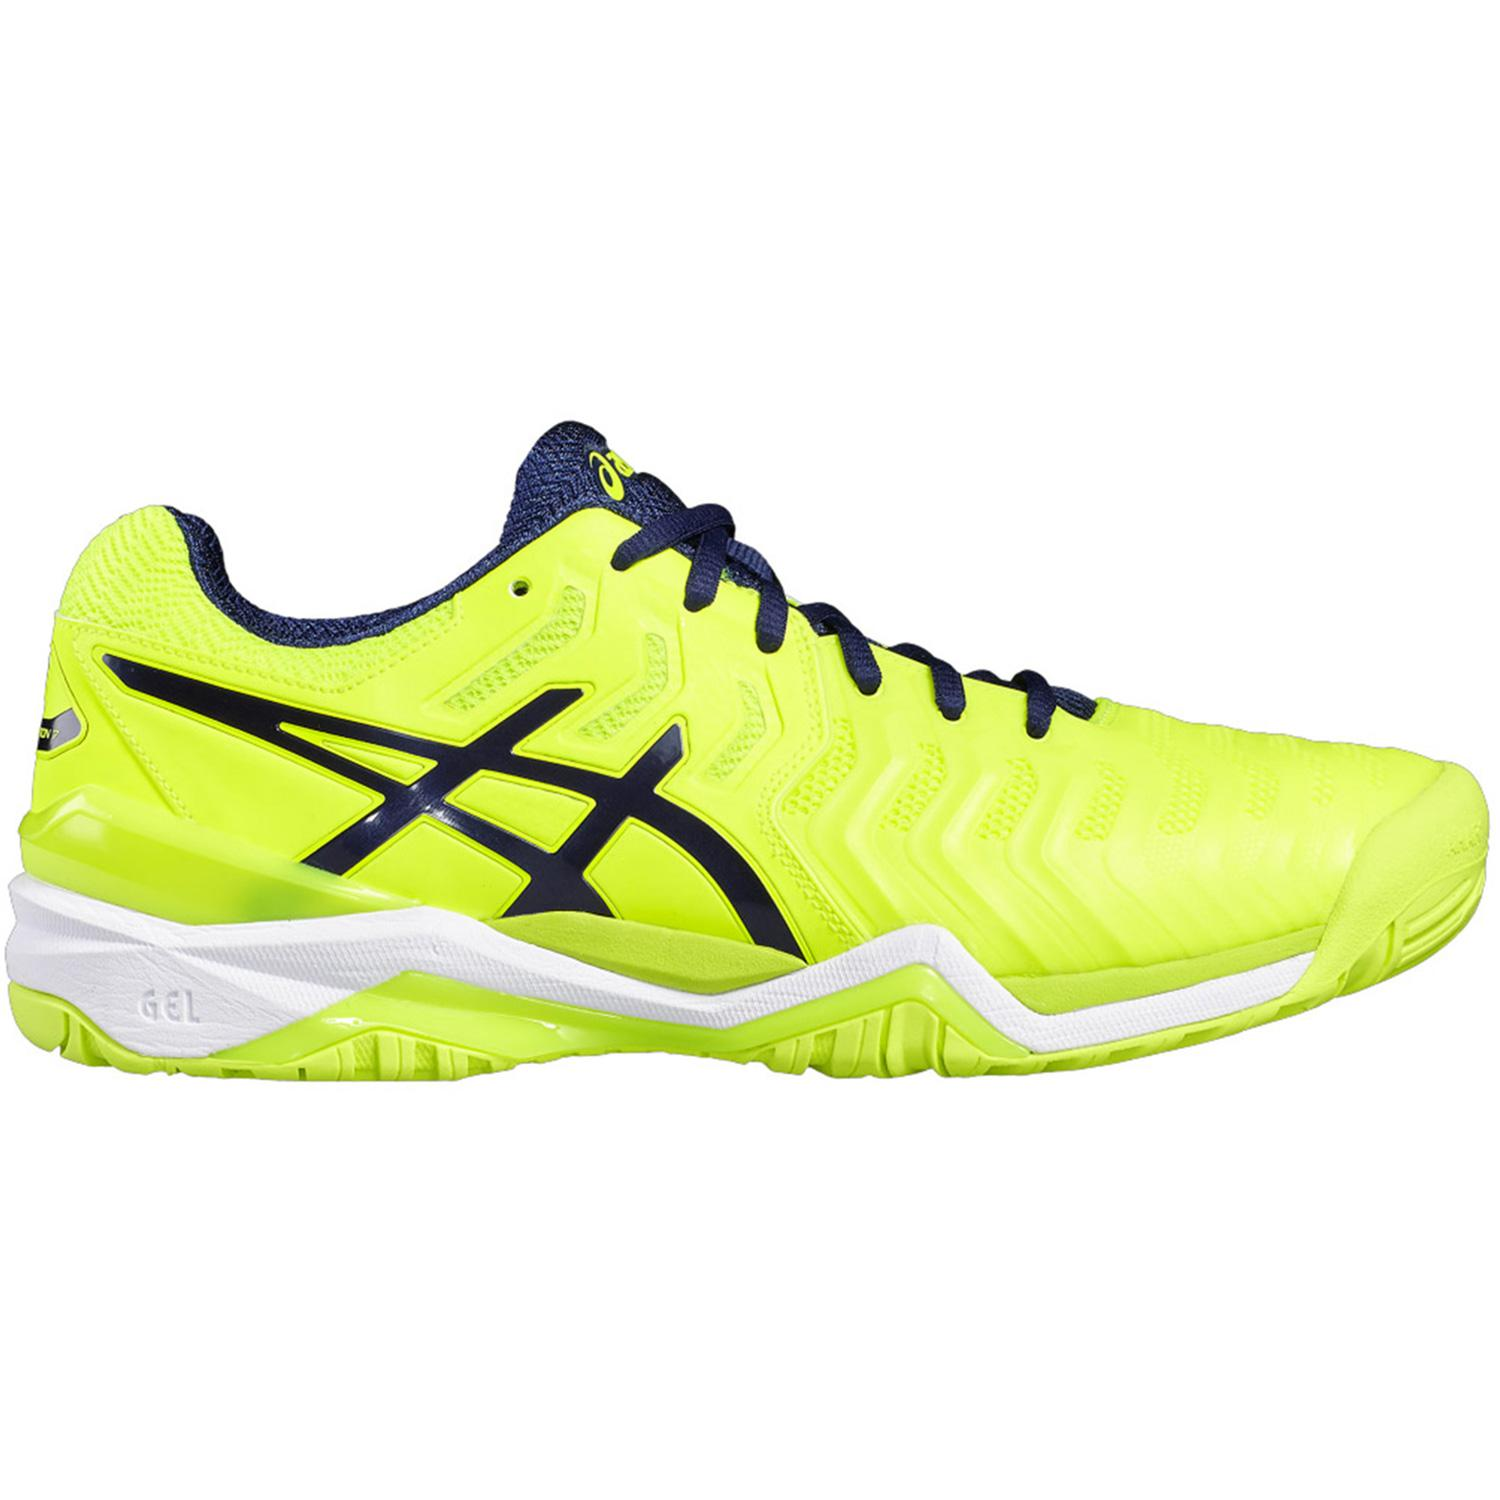 2d63fb98976c Asics Mens GEL-Resolution 7 Tennis Shoes - Yellow Blue - Tennisnuts.com